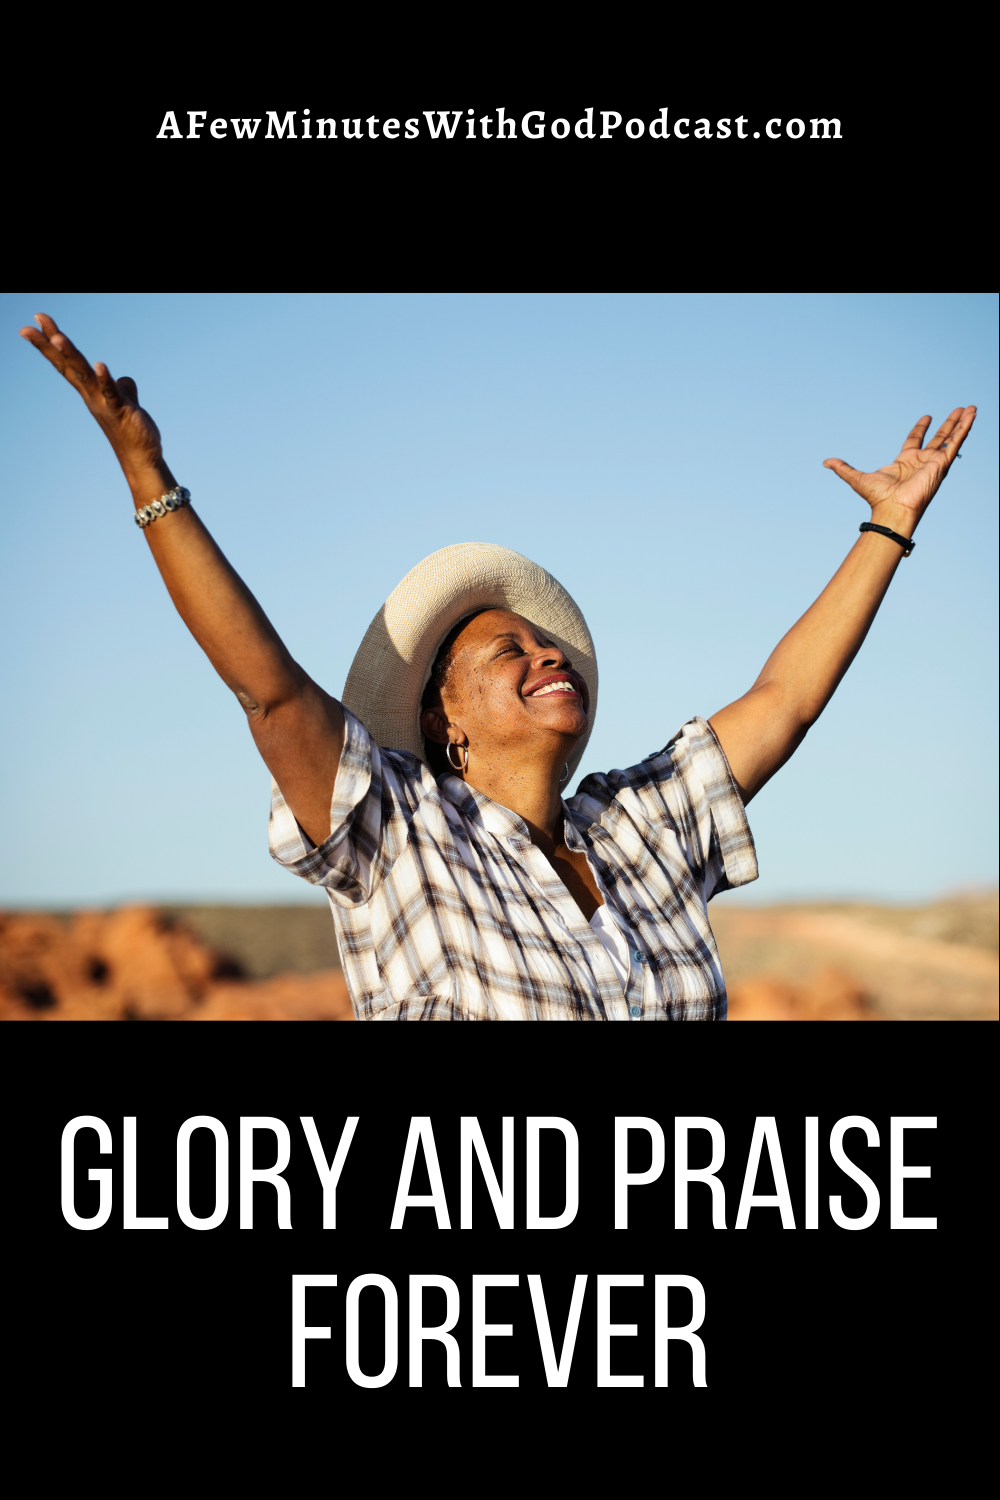 Recently I was reminded that we don't talk enough about giving God all the glory and praise, and honor He deserves. In this episode of A Few Minutes With God Podcast, Felice shares the importance of praise in worship in our lives.